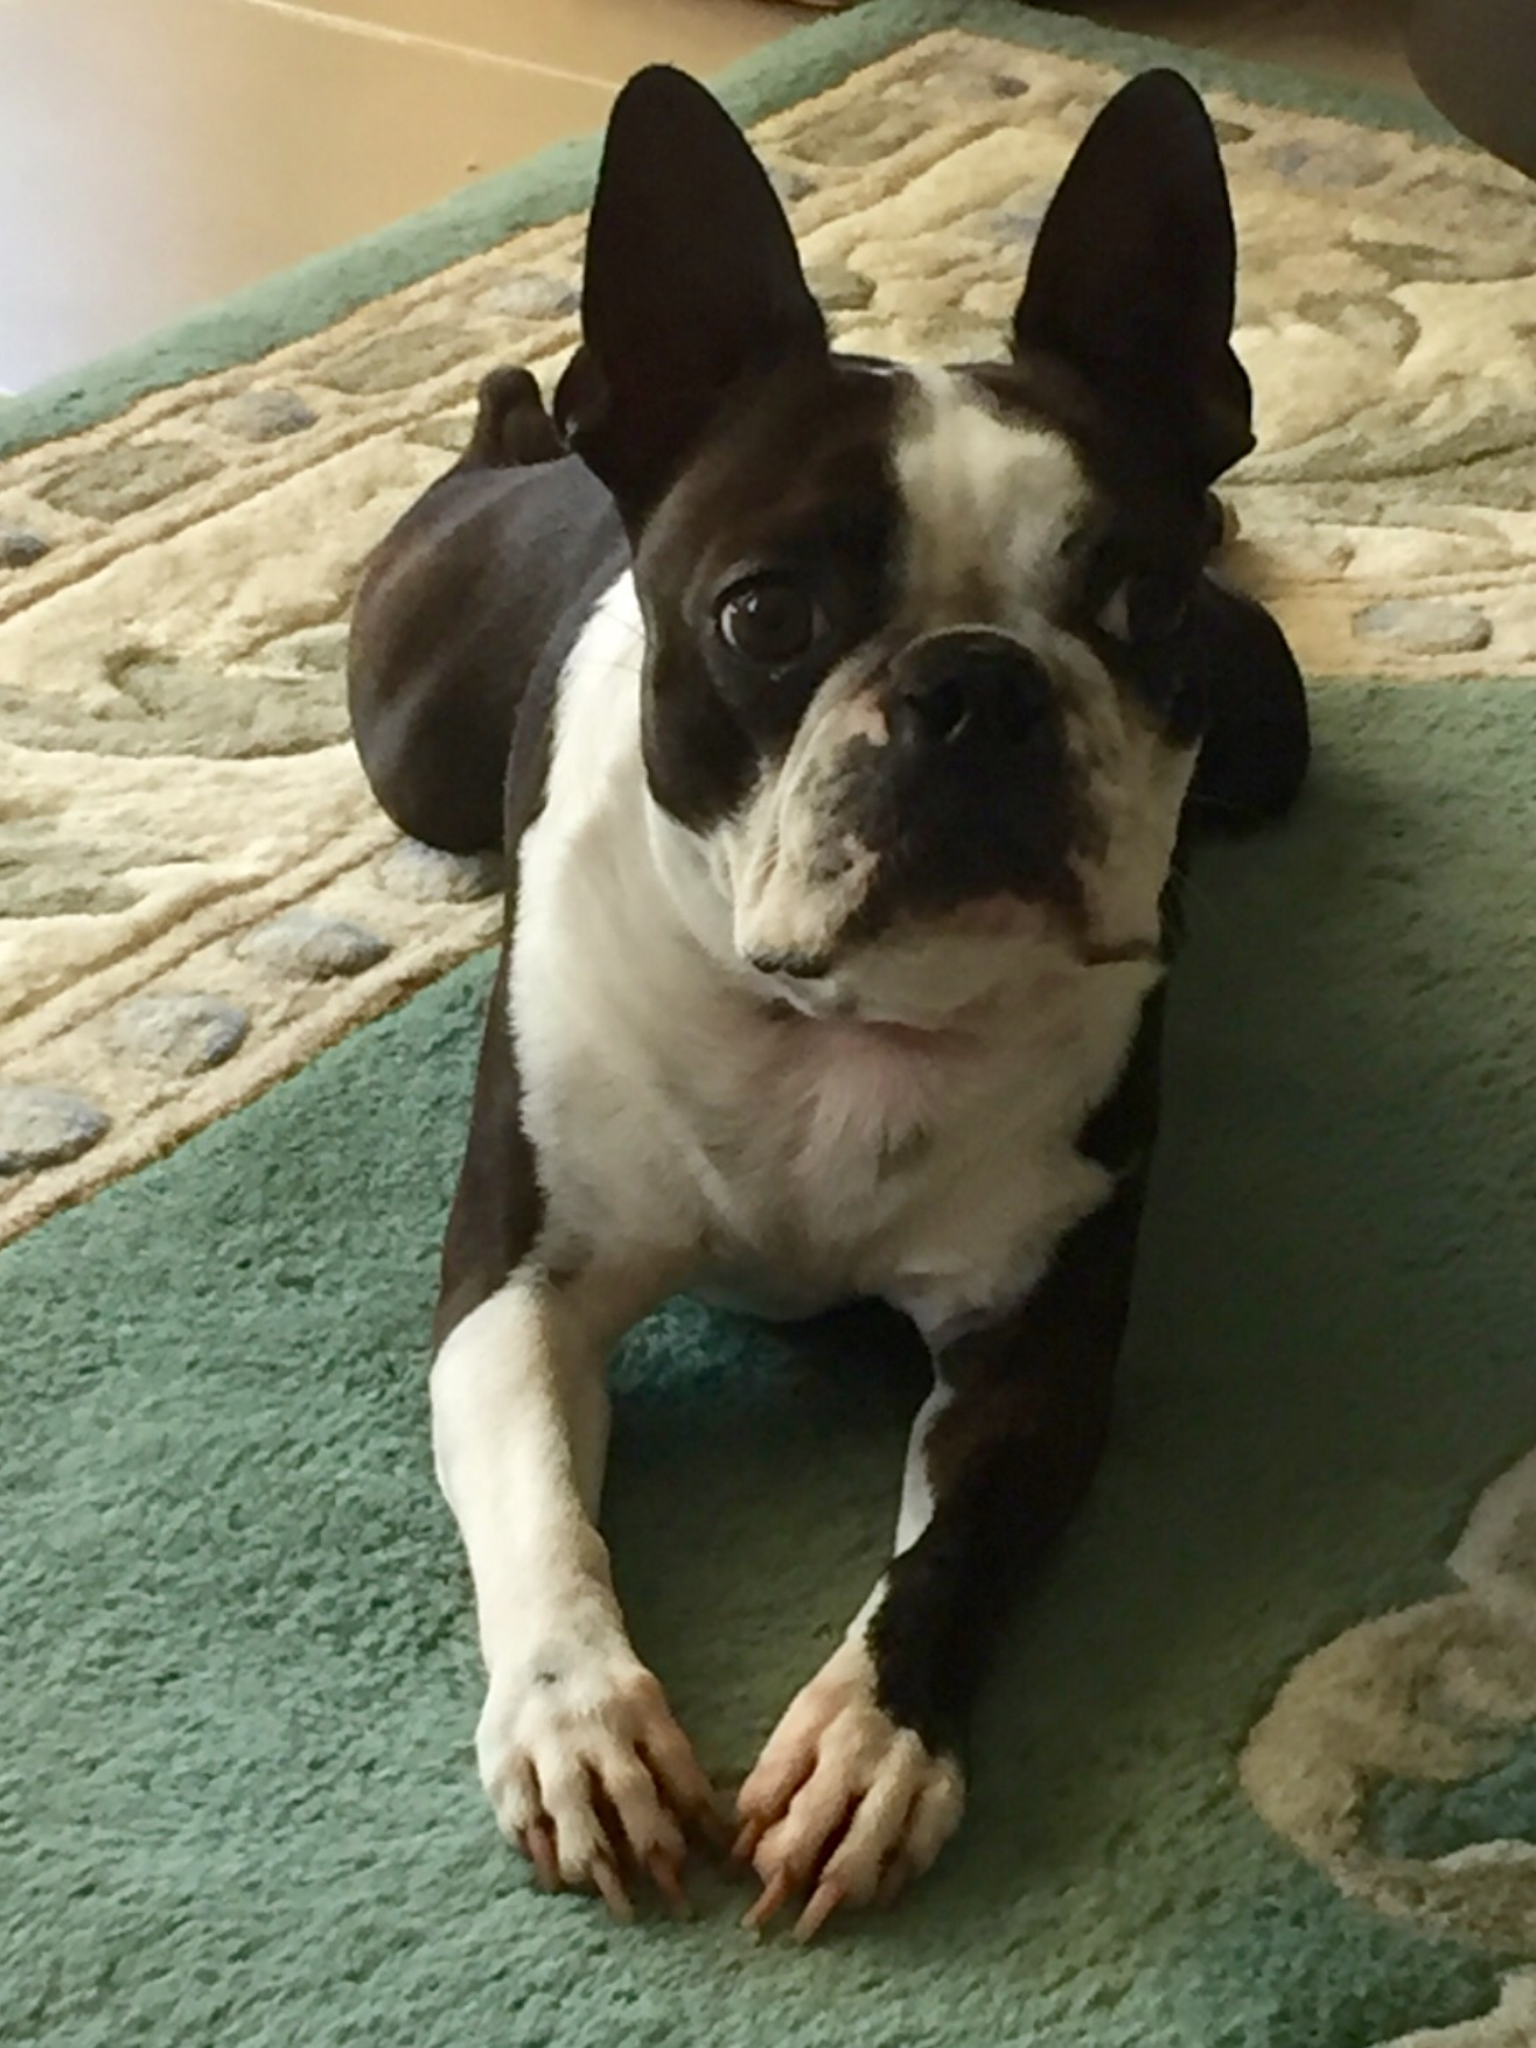 Pin By Courtney On Boston Terrier Mom Animals Friends Boston Terrier Cute Animals